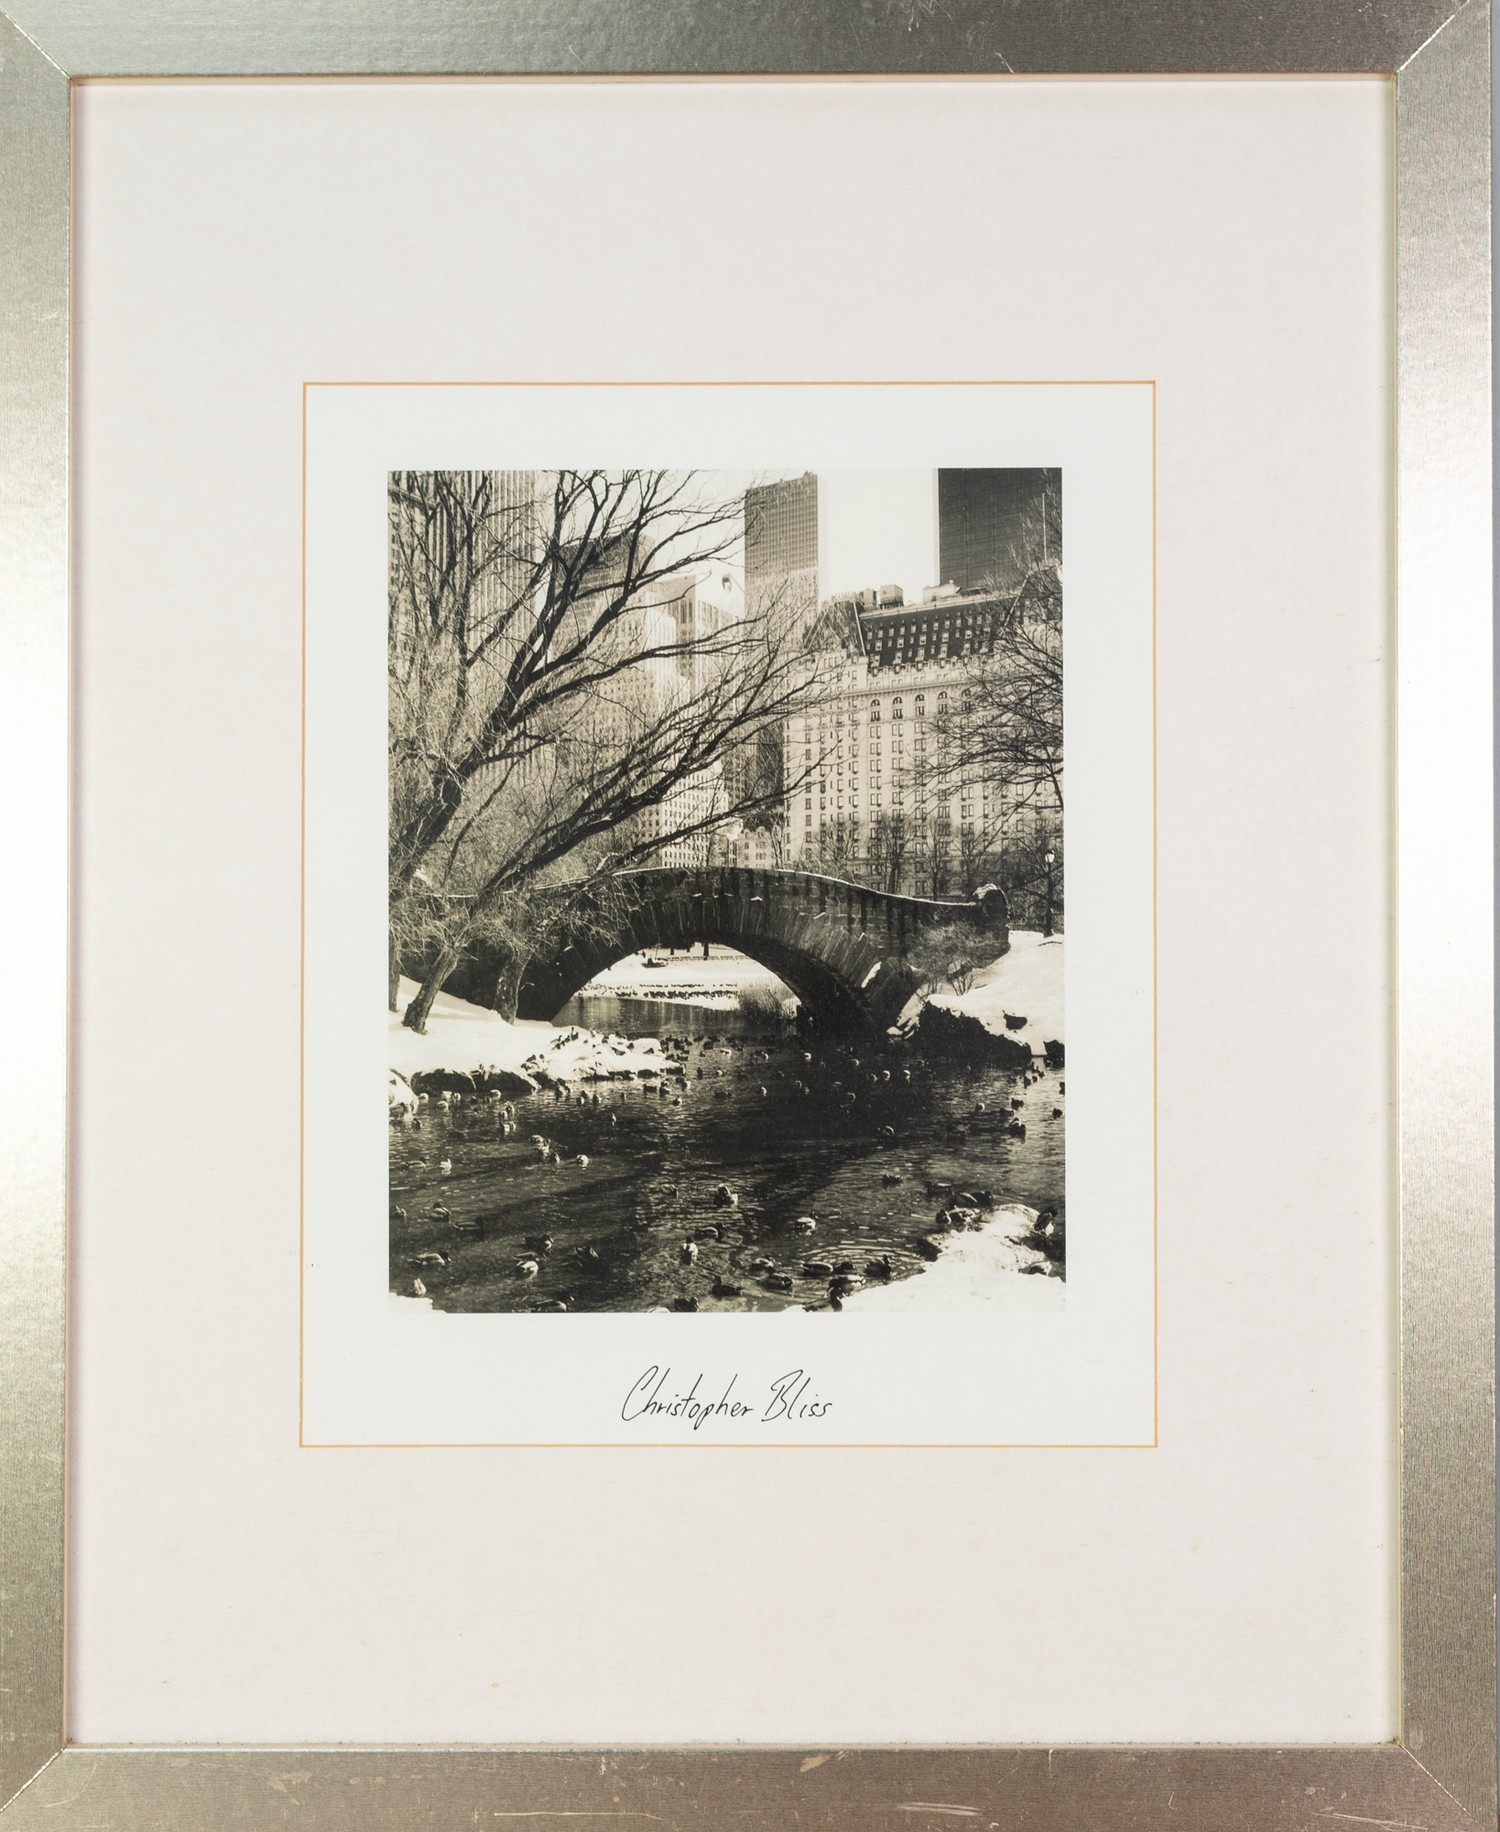 CHRISTOPHER BLISS (AMERICAN) TWO BLACK AND WHITE PHOTOGRAPHIC PRINTS New York Cityscapes each with - Image 4 of 4